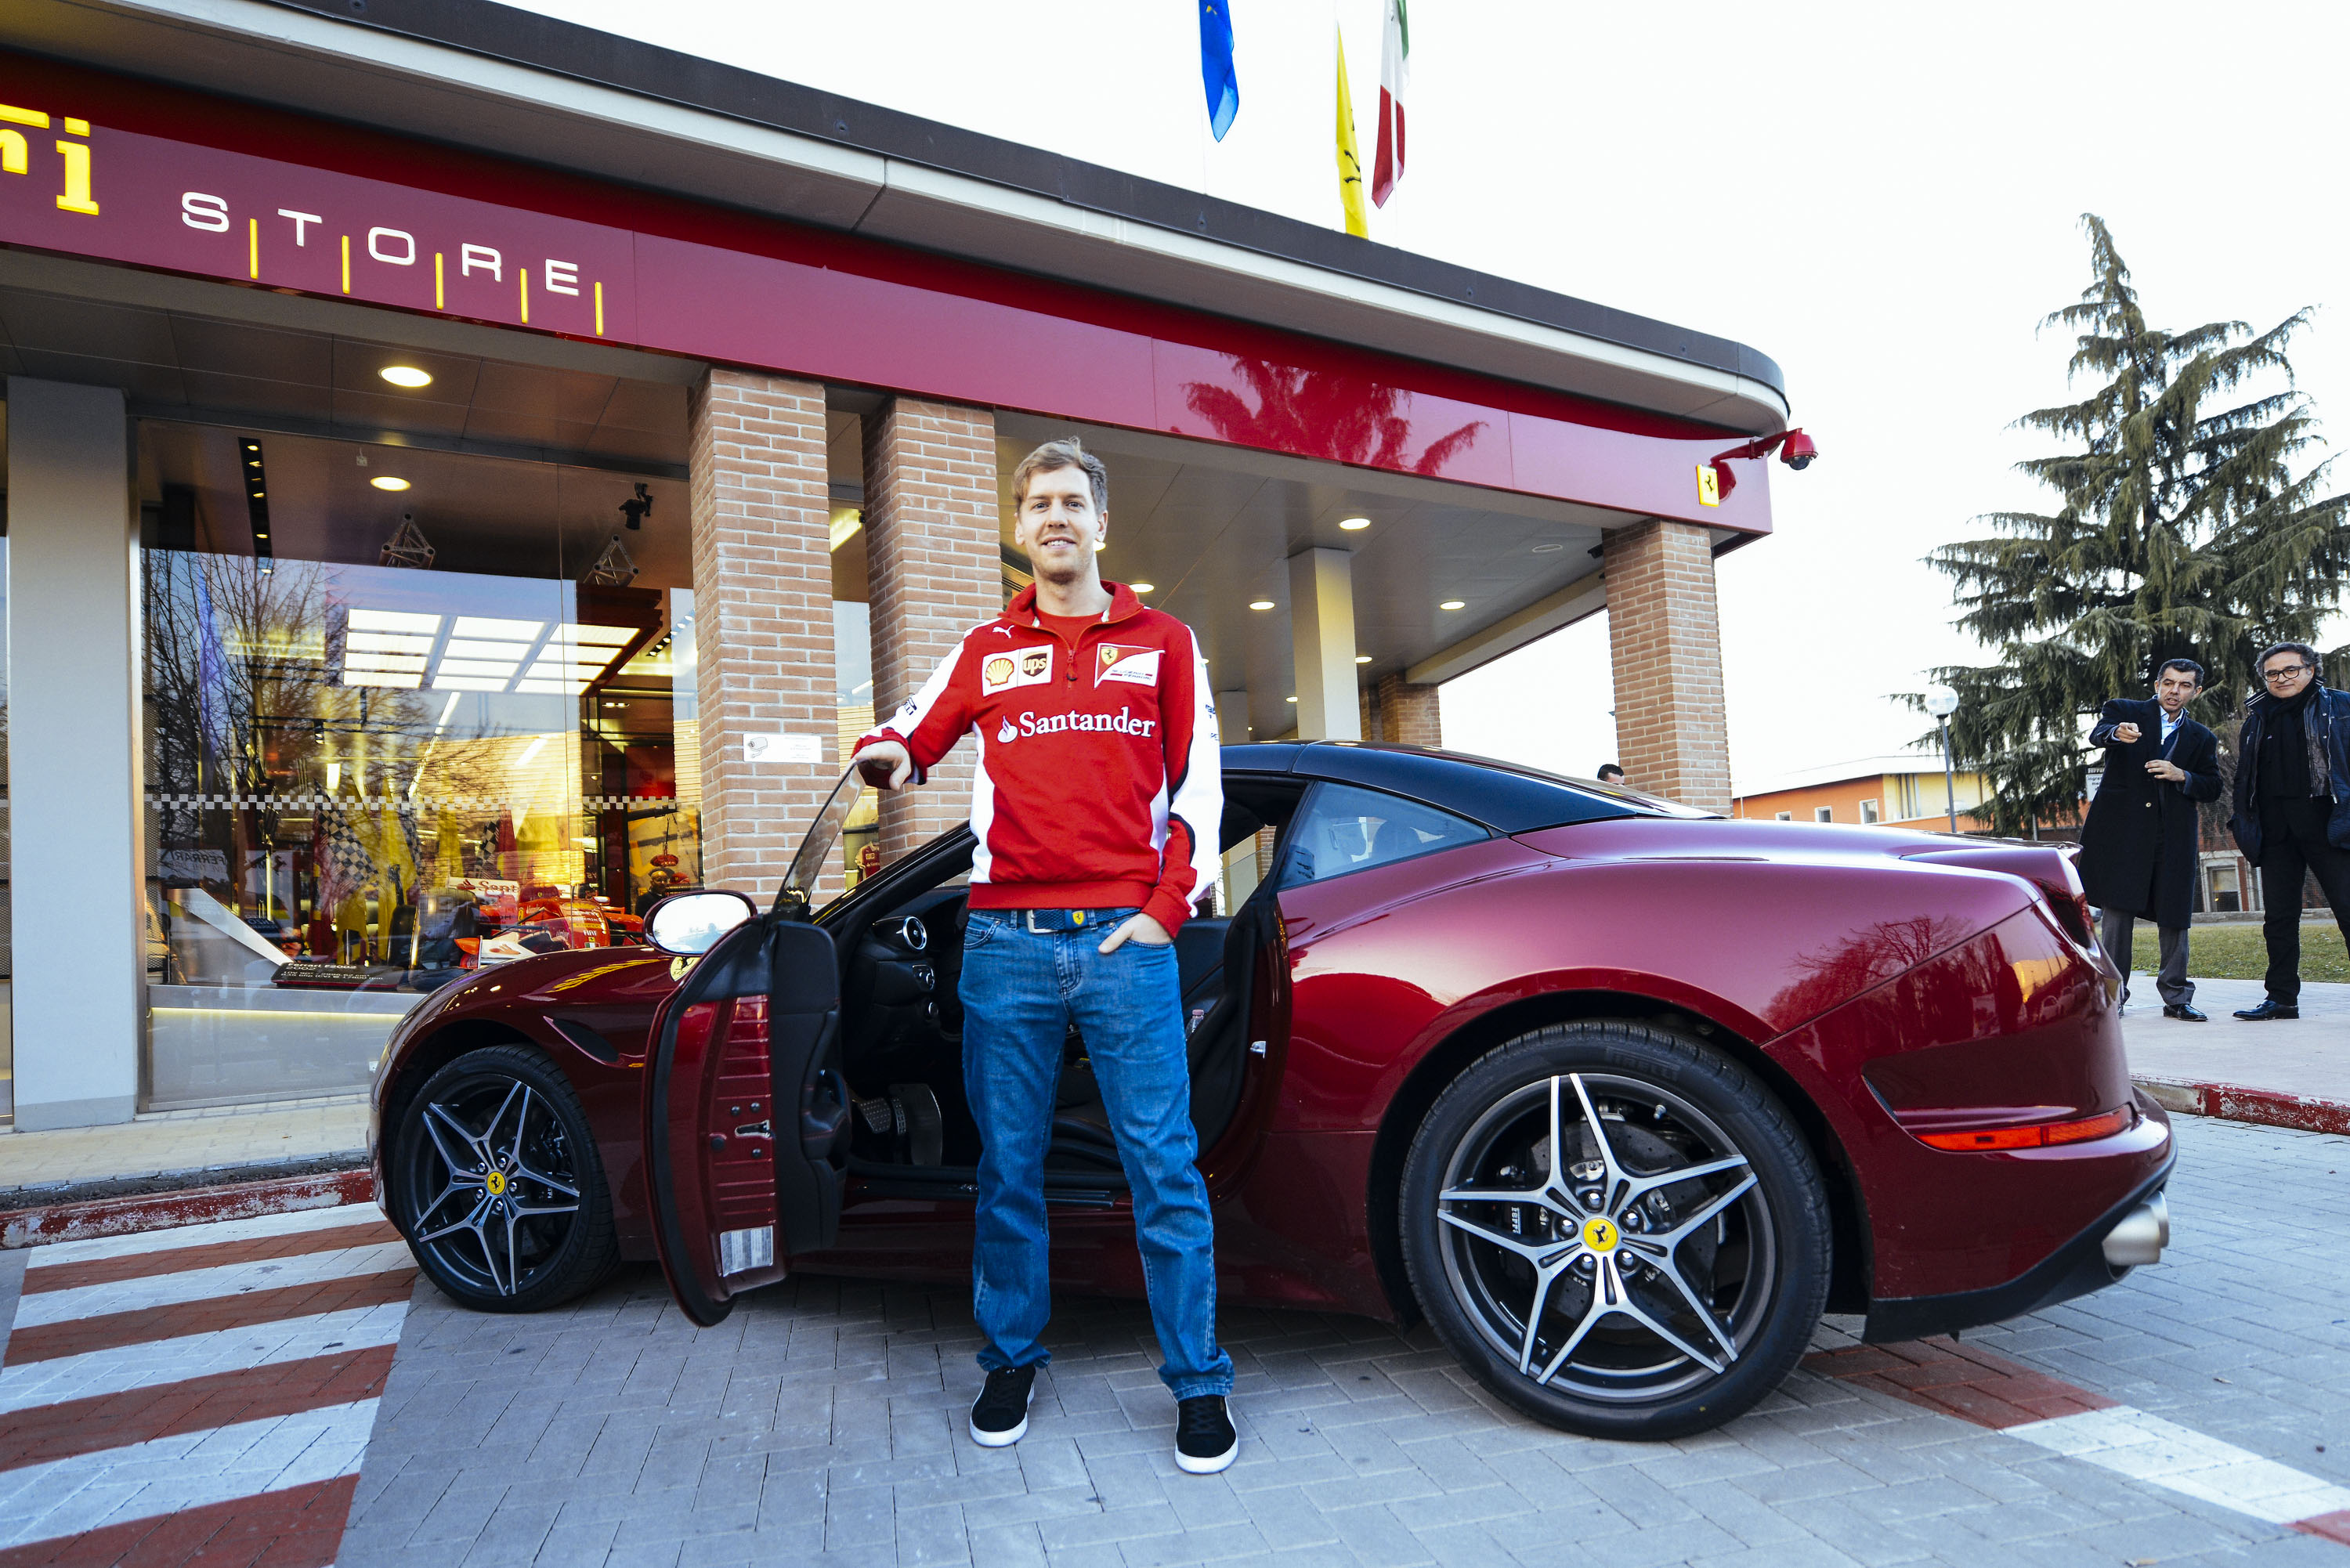 Ferrari Store  Apparel and merchandise  Official Ferrari